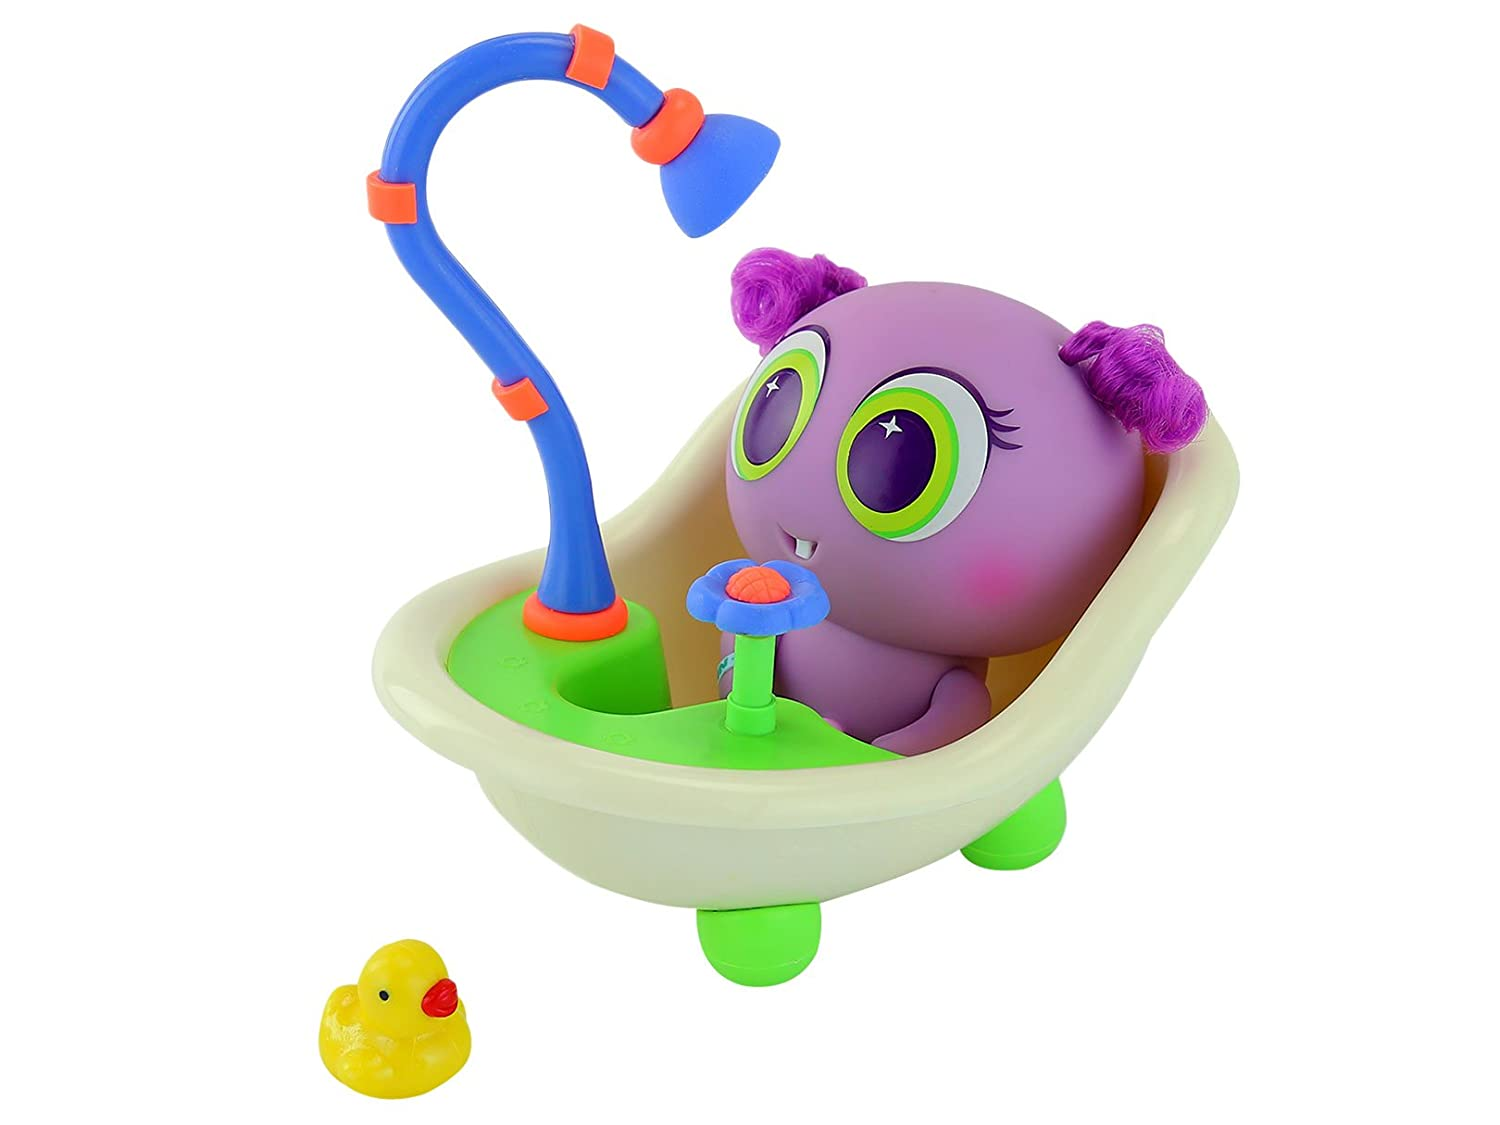 Neonate nerlieグリーン&ブルーBath Tub with Flower & Duck – Mexico Exclusive   B07B6KPNP5